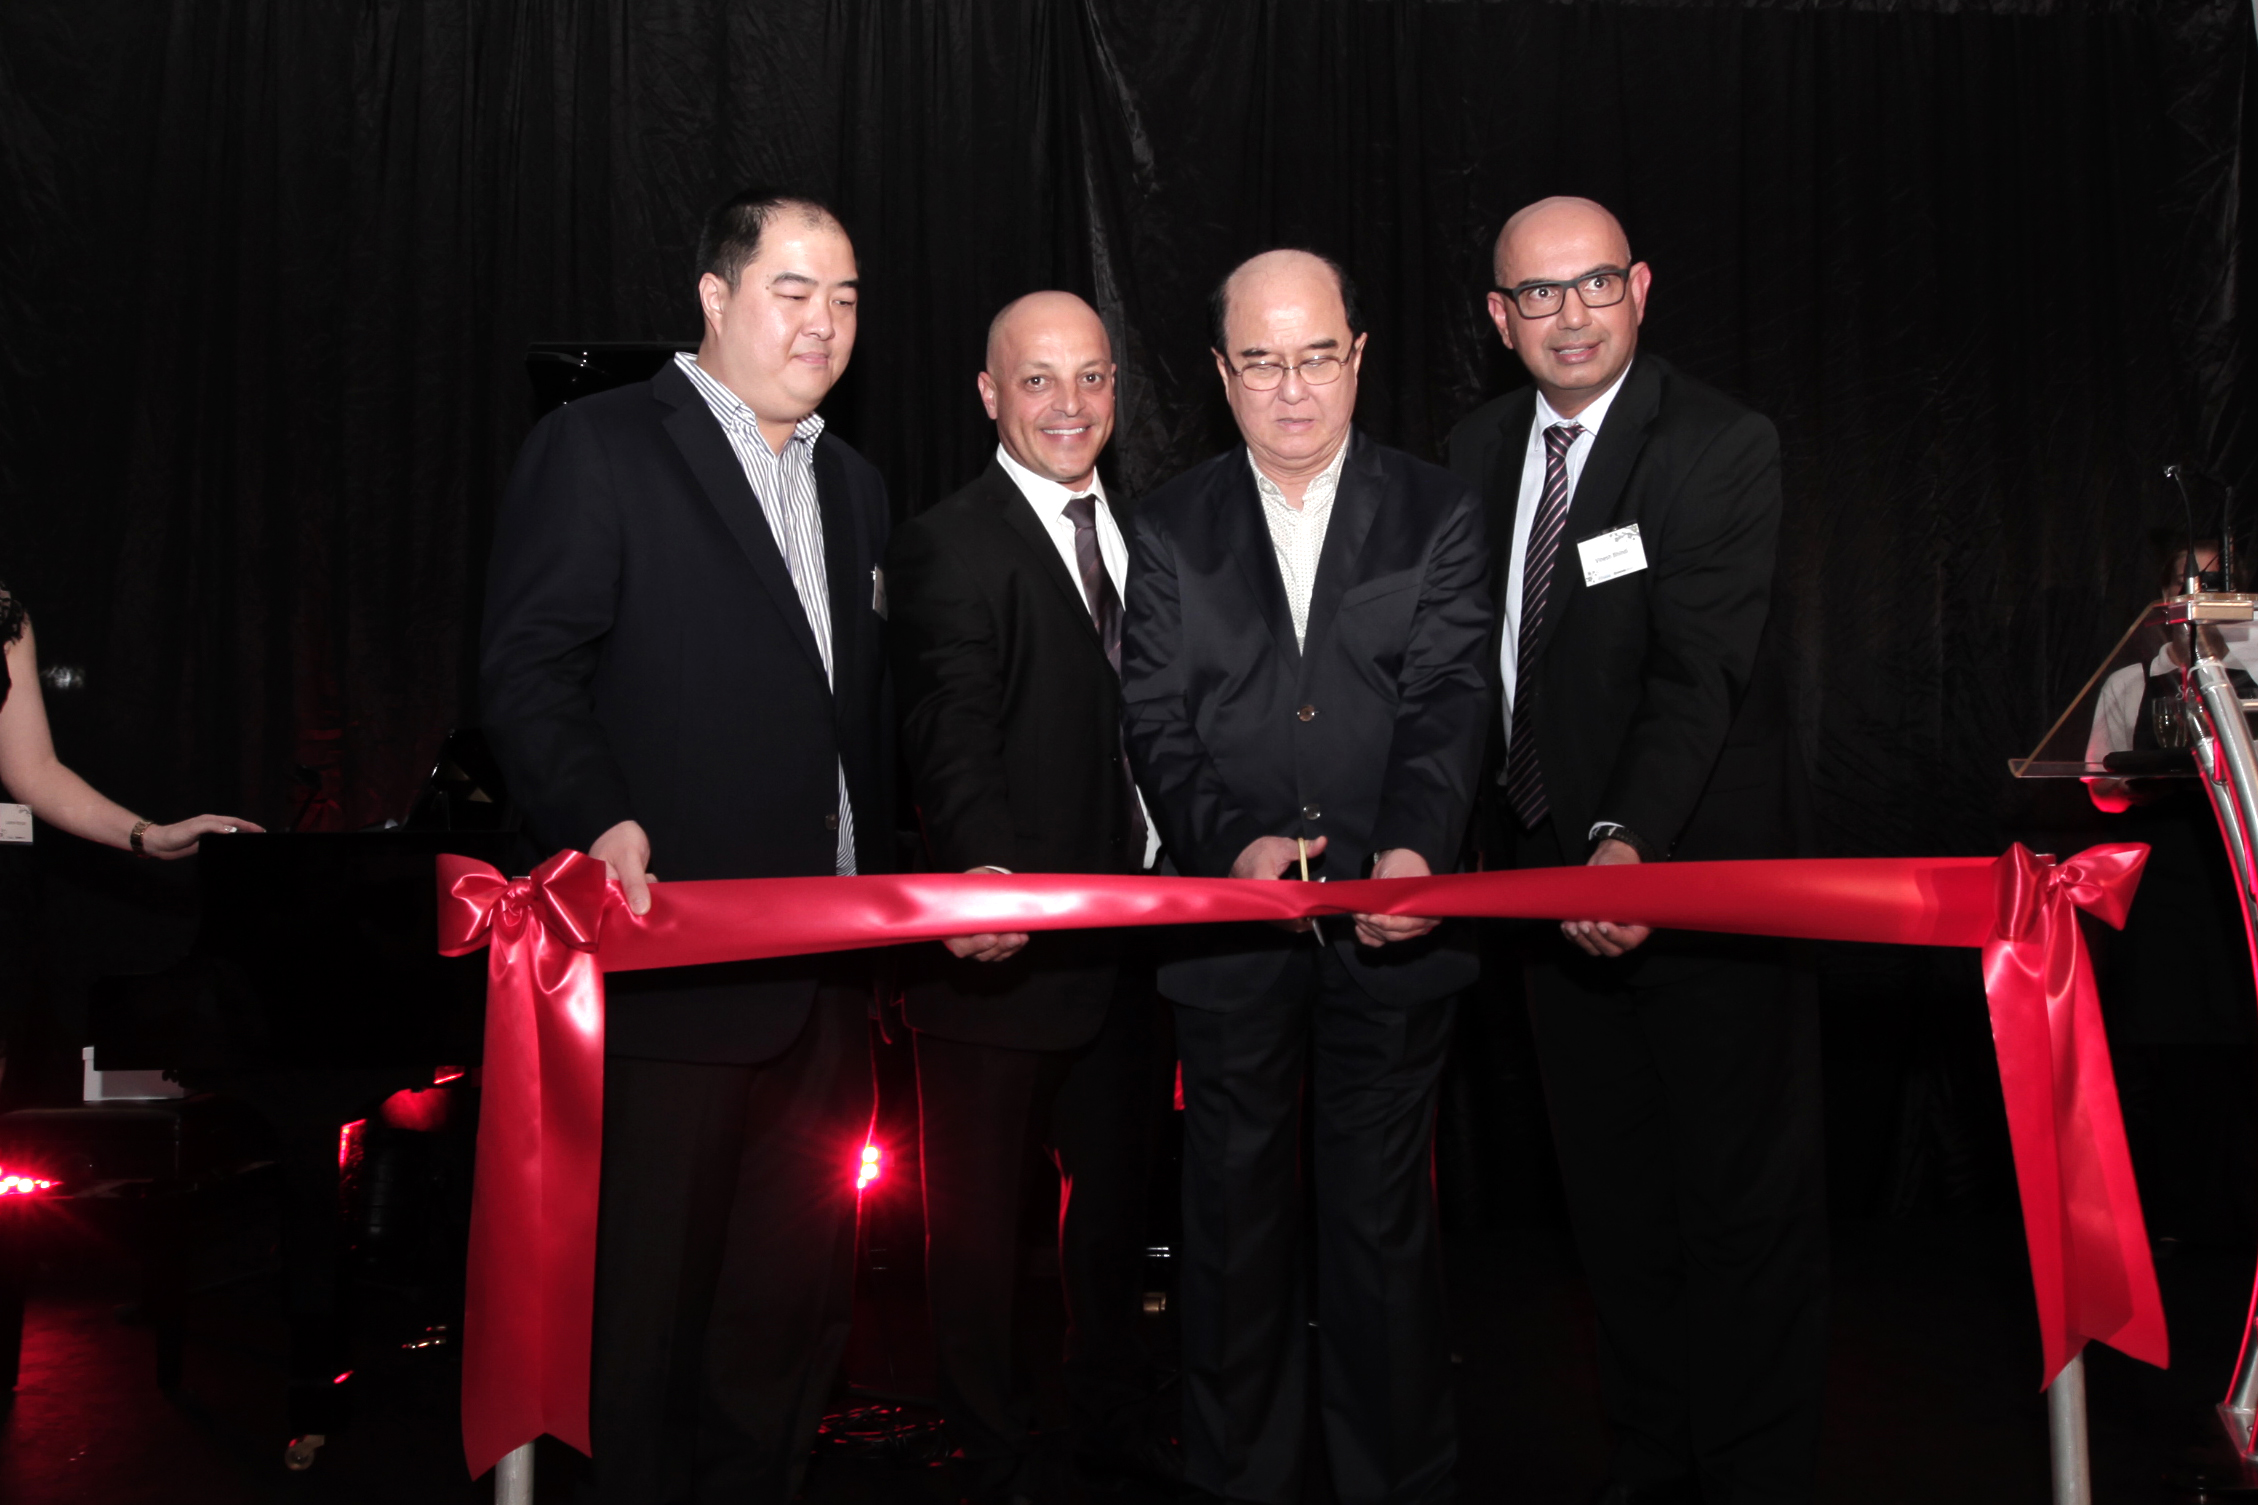 The official opening of the Mazda dealership in Bayswater Western Australia in 2016.